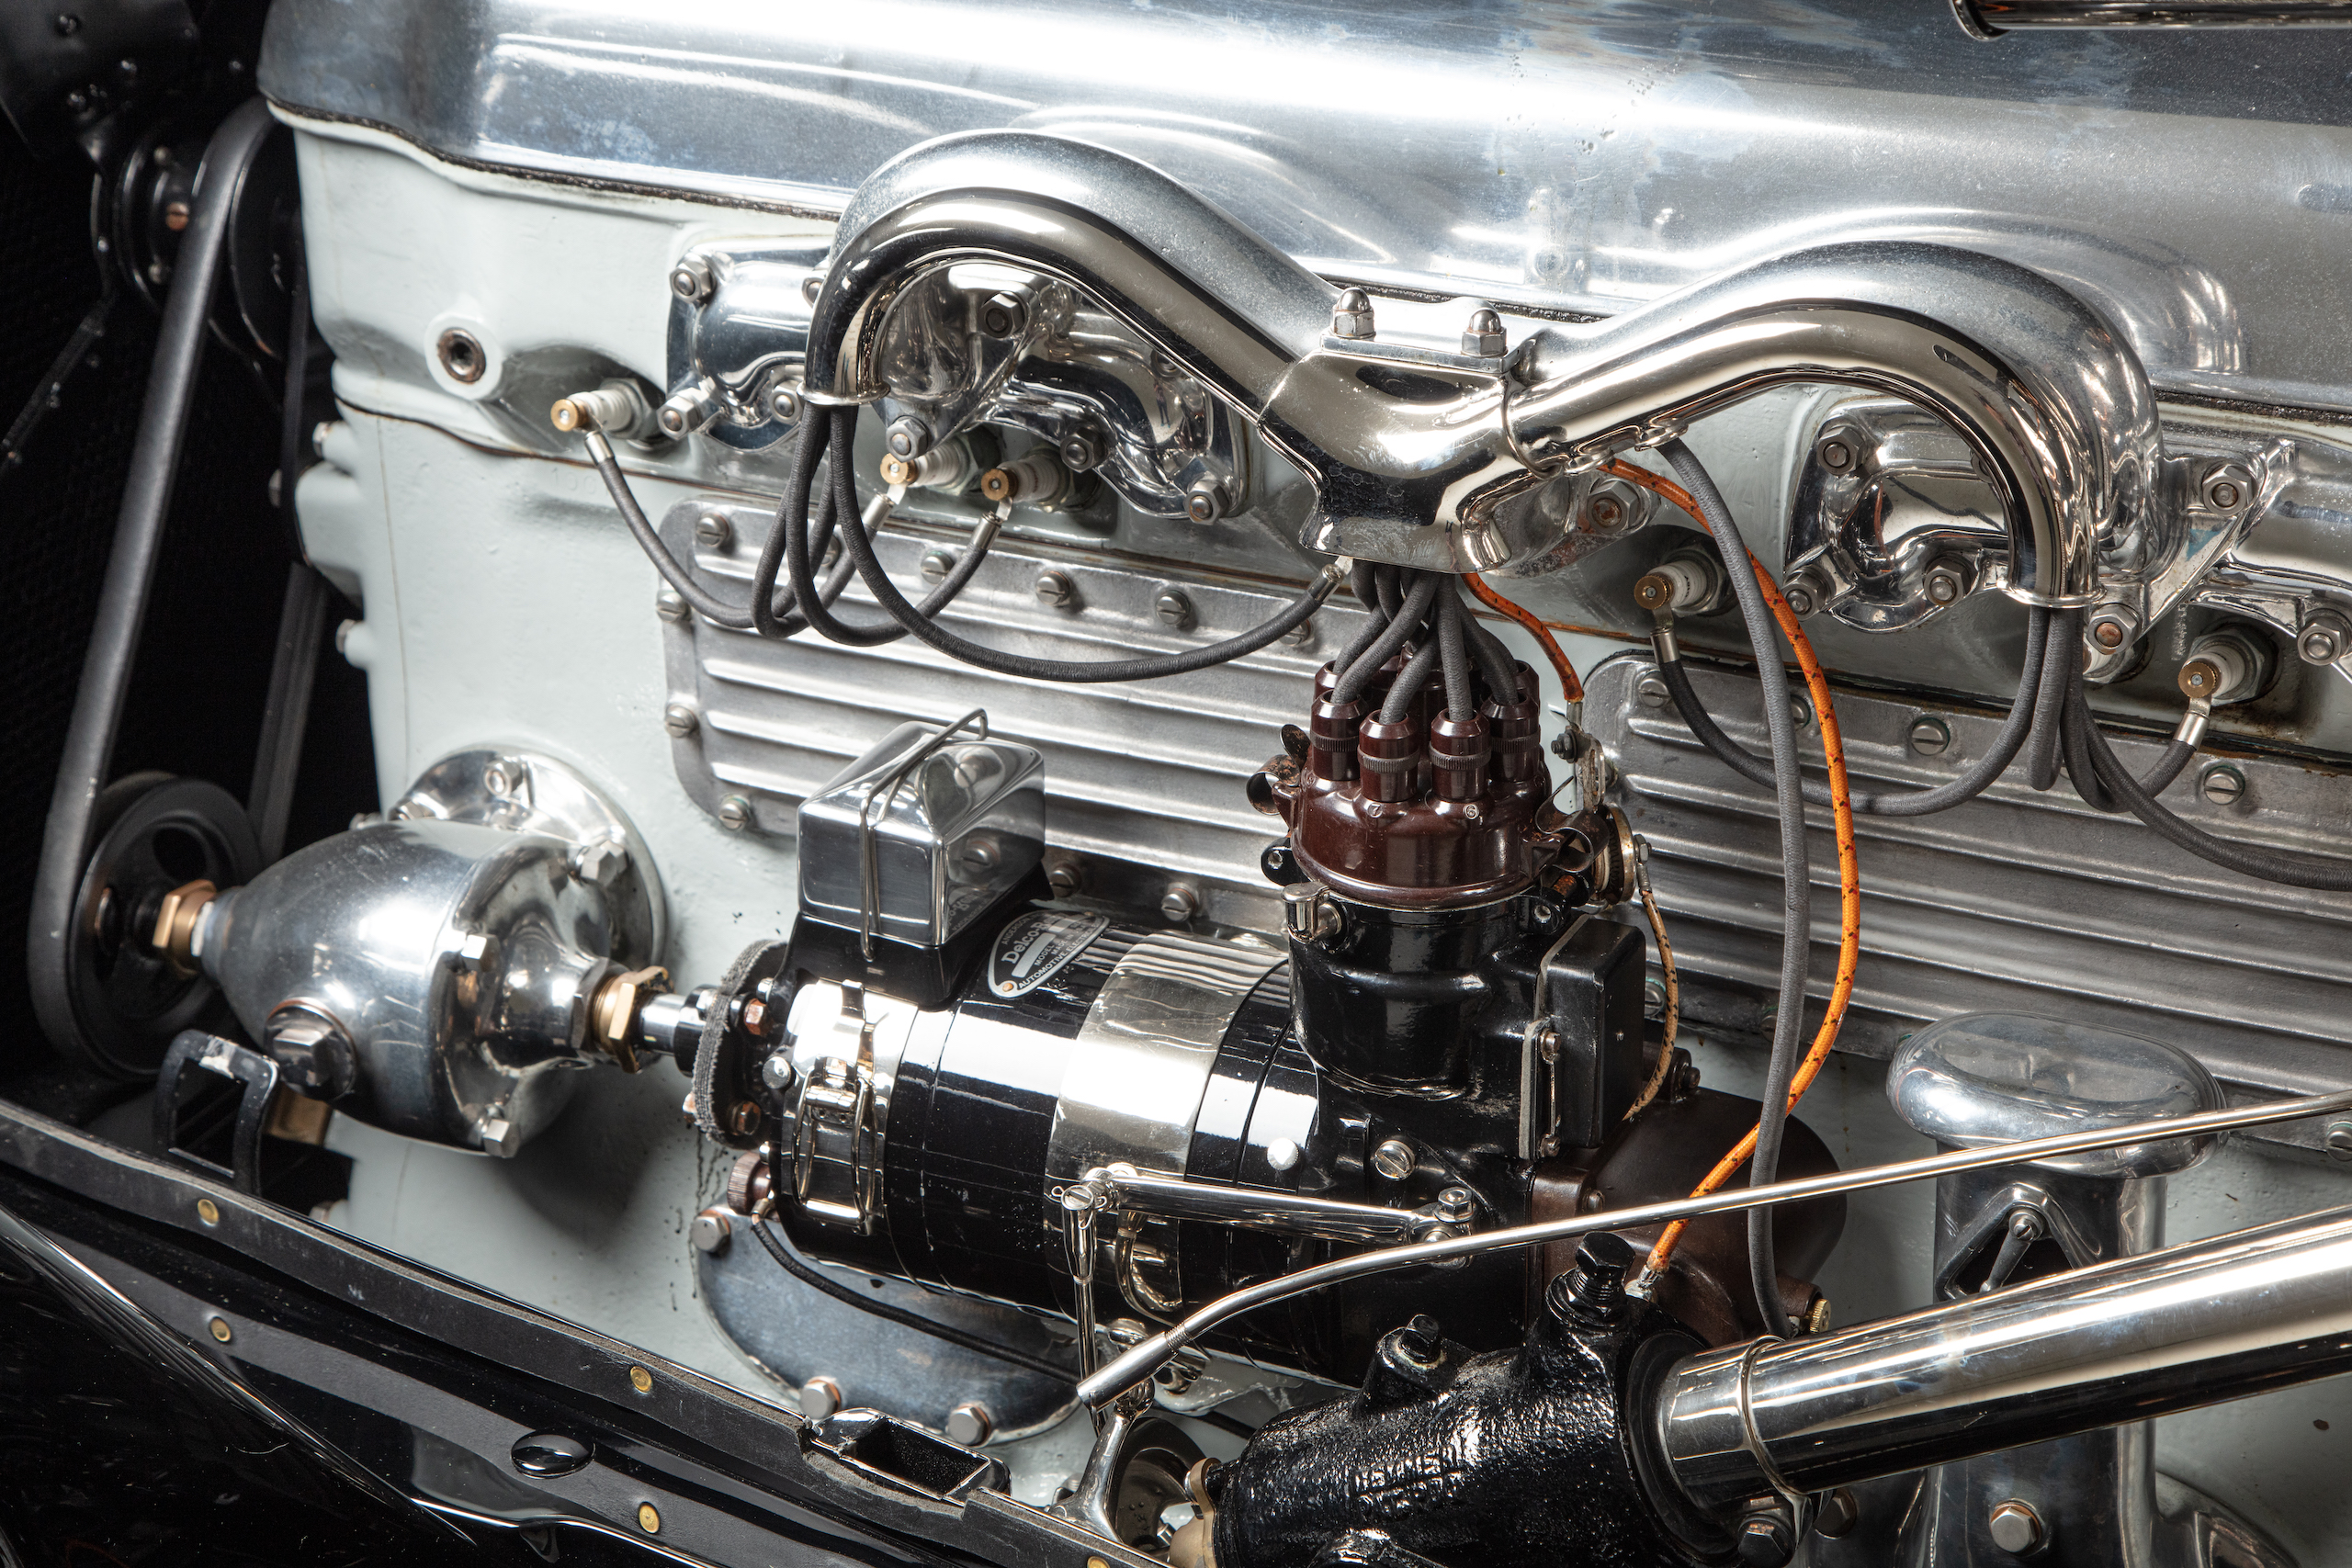 Duesenberg model A engine details